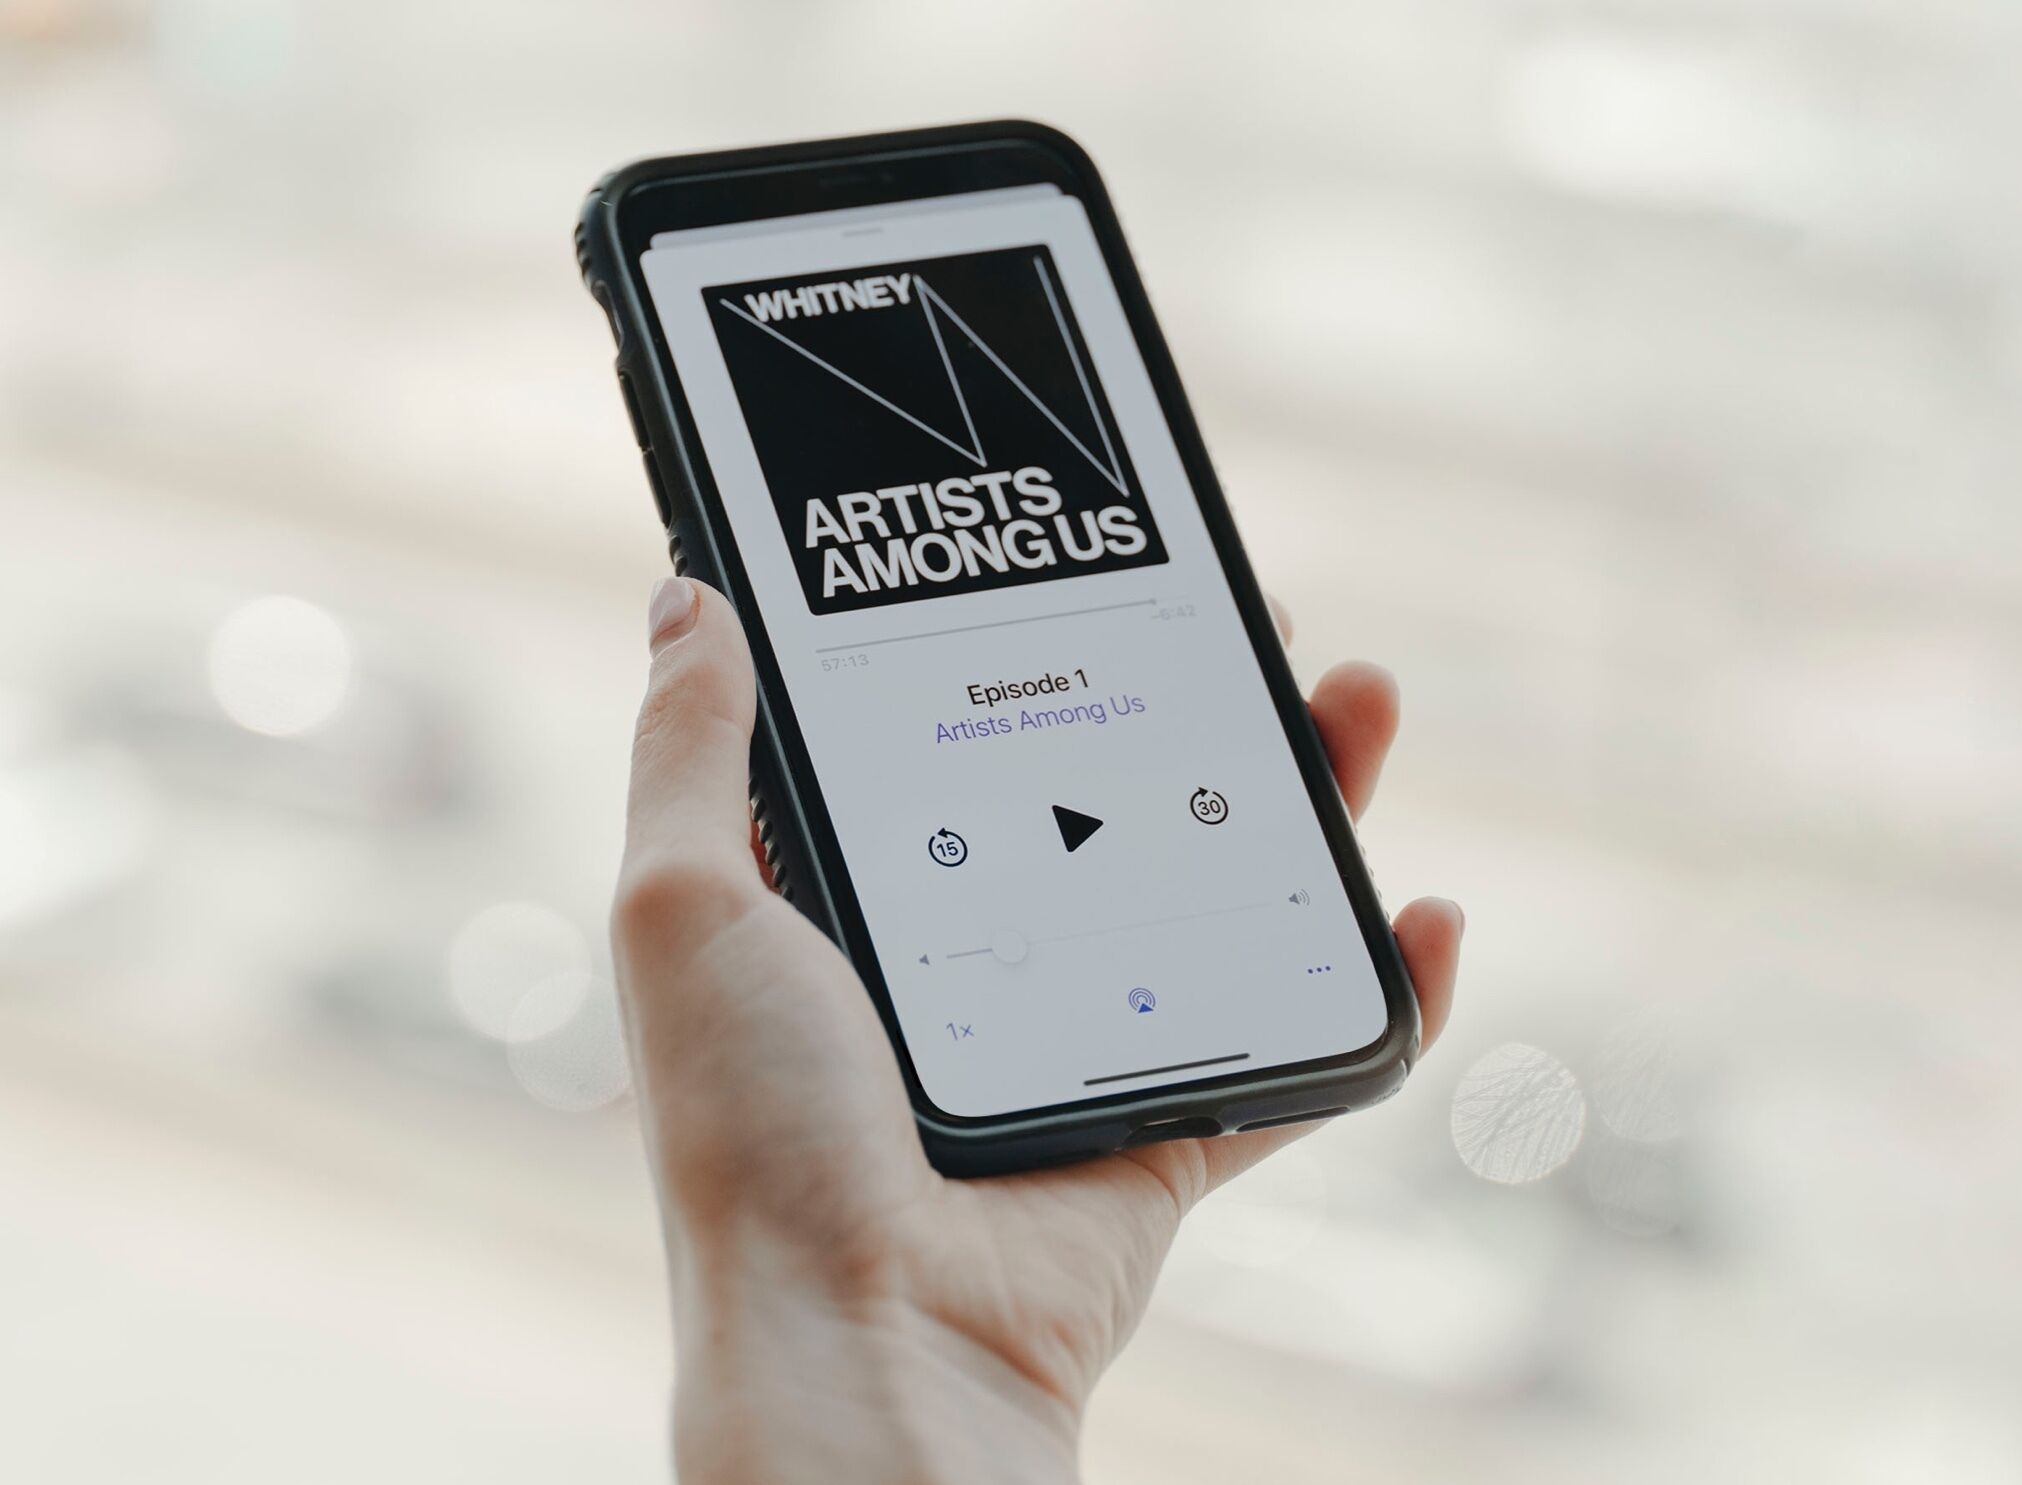 A hand holding a smartphone whose screen displays the Artists Among Us podcast playing.